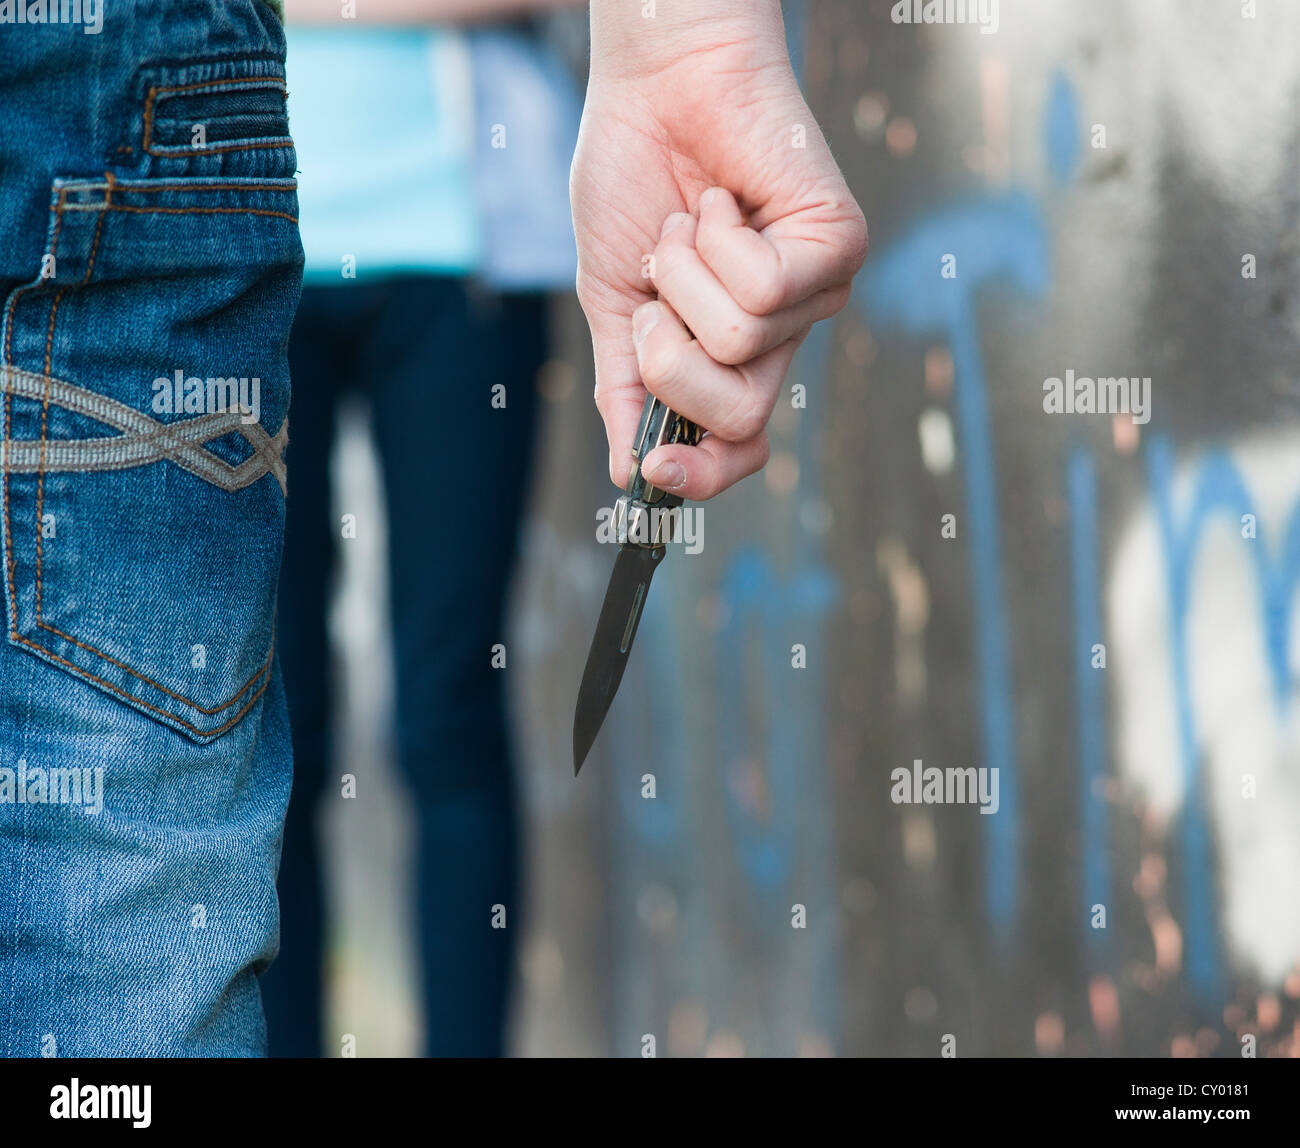 Boy threatening a girl with a knife - Stock Image